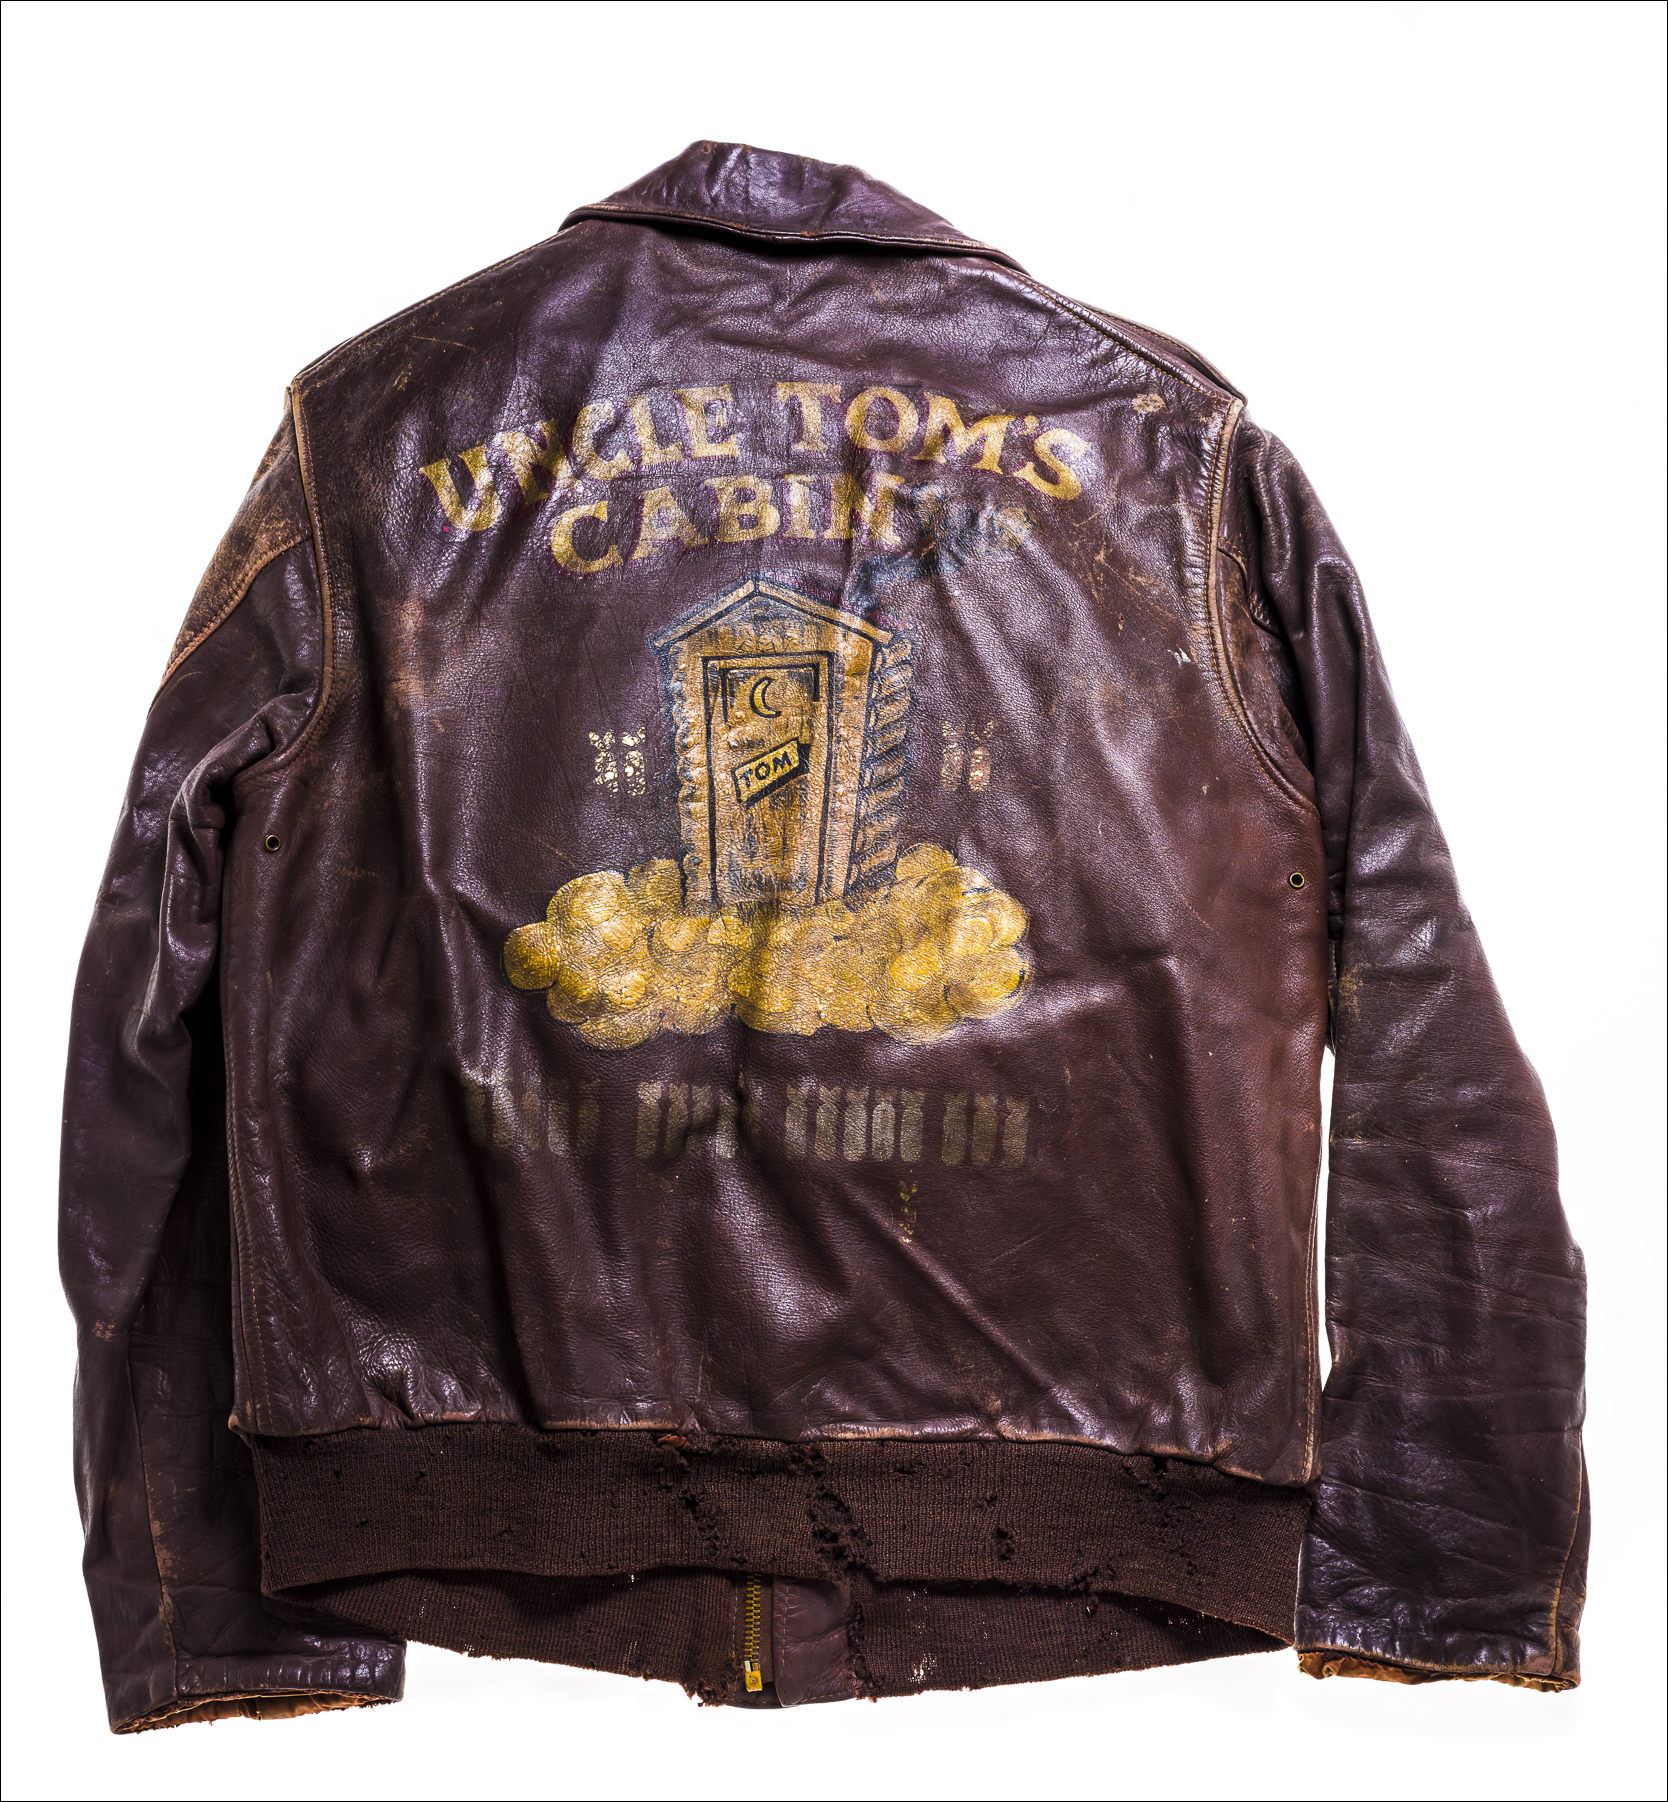 Walter Thomason's flight jacket.